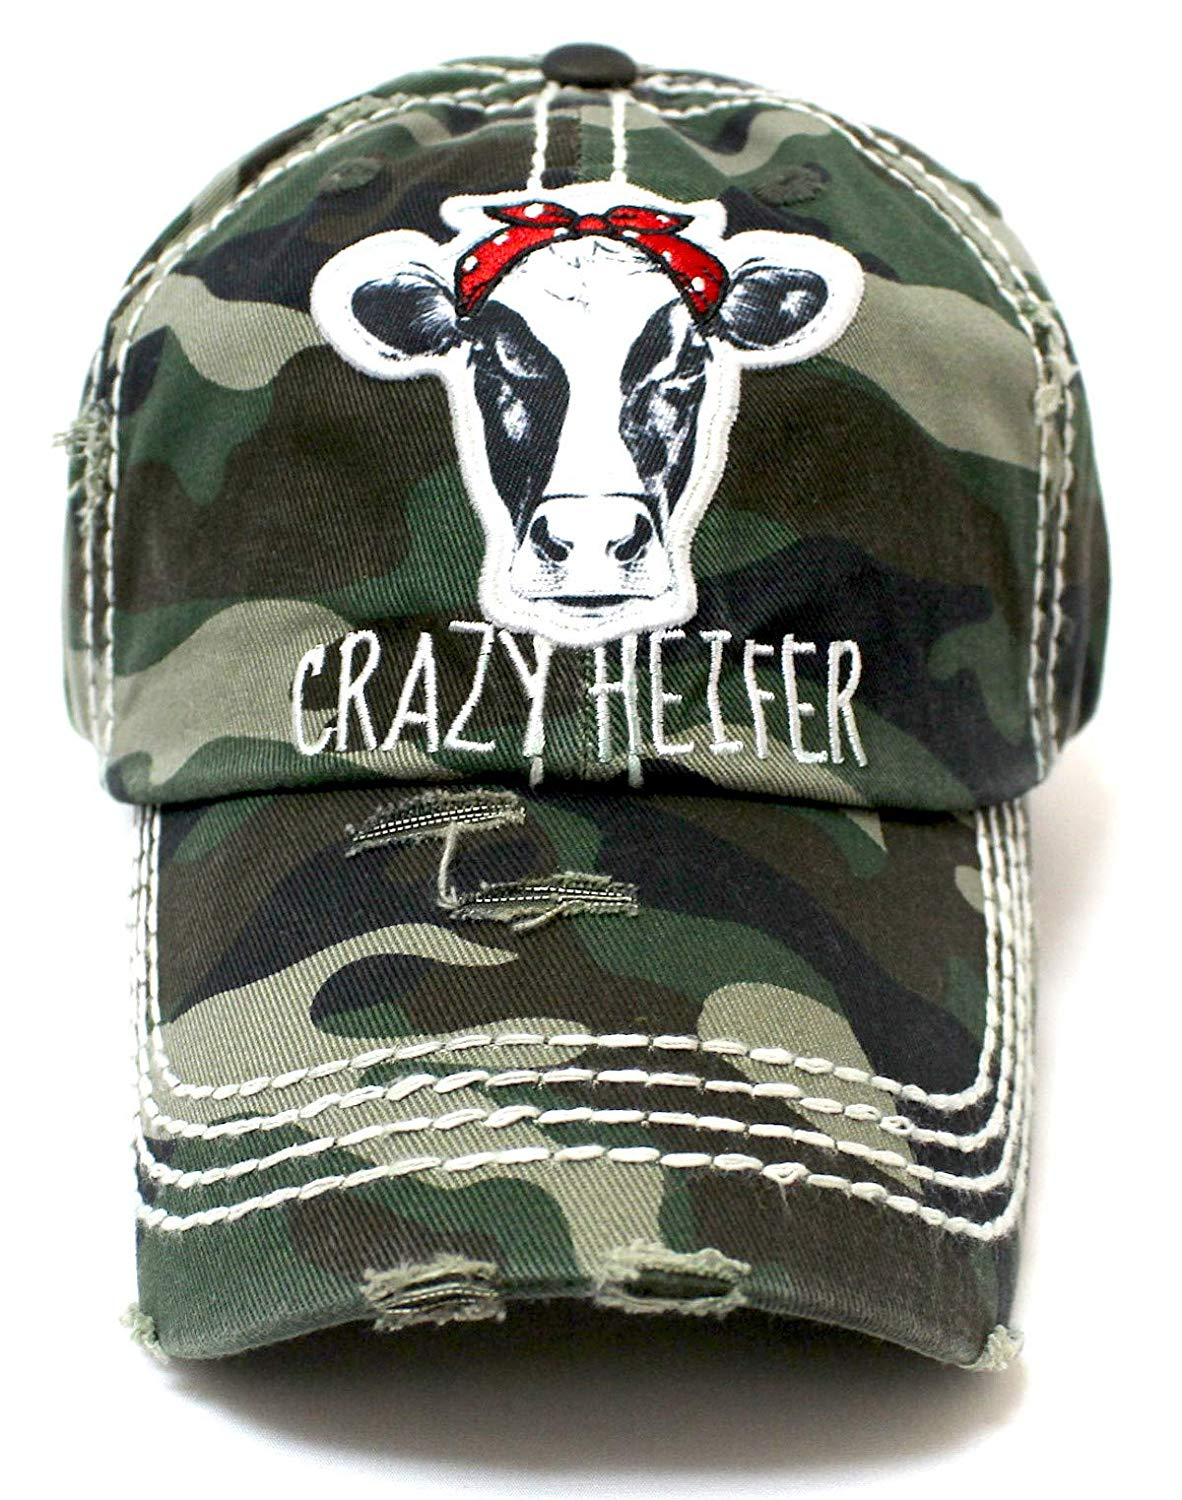 Crazy Heifer Cow Patch Embroidery Hat - Caps 'N Vintage